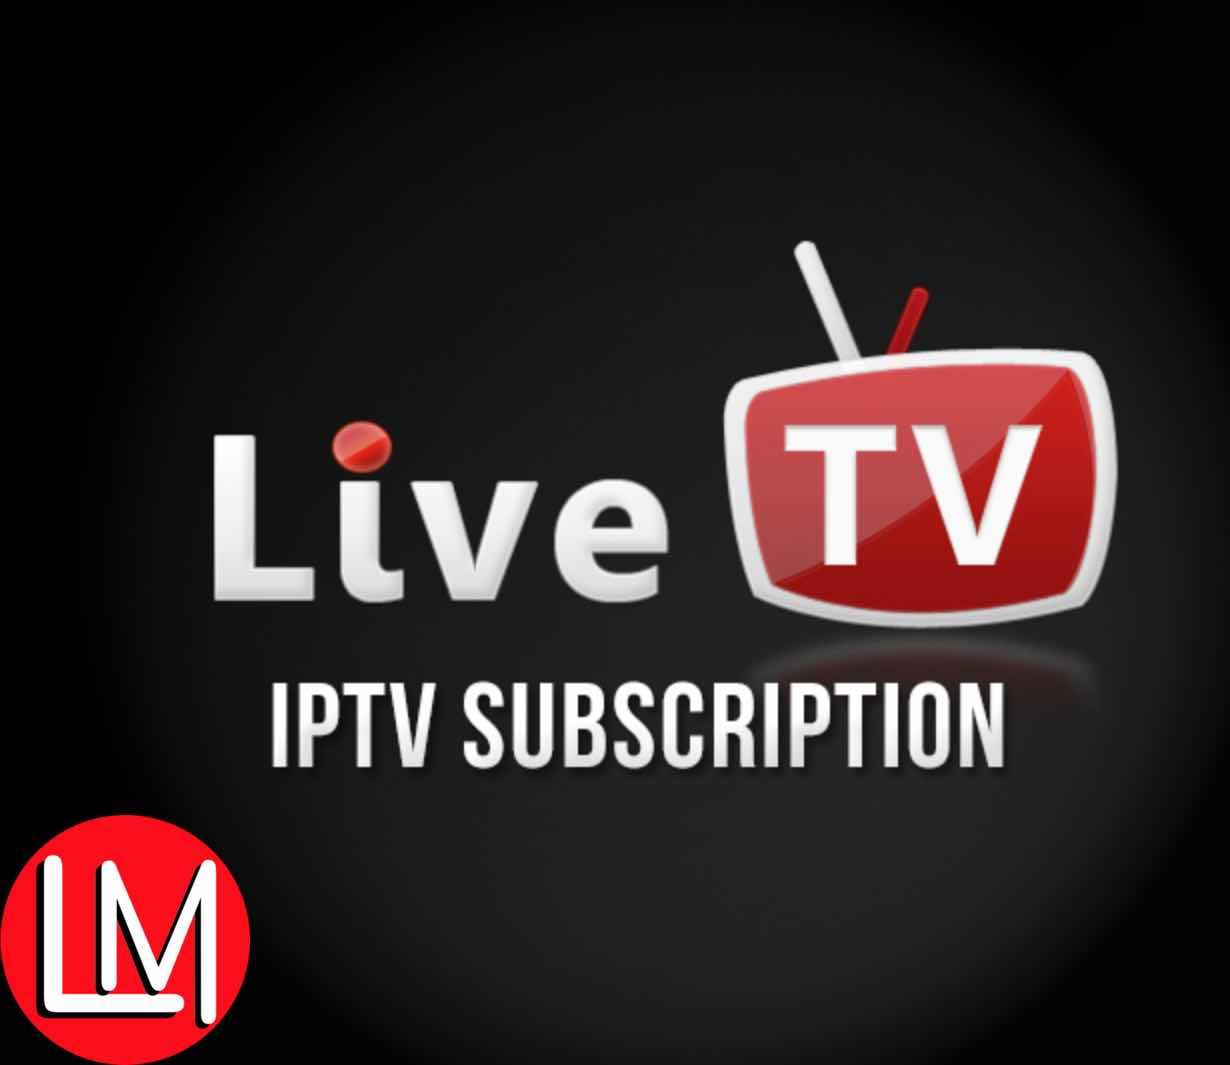 Is IPTV legal? Are Subscriptions to all IPTV Services Legal/Legitimate?